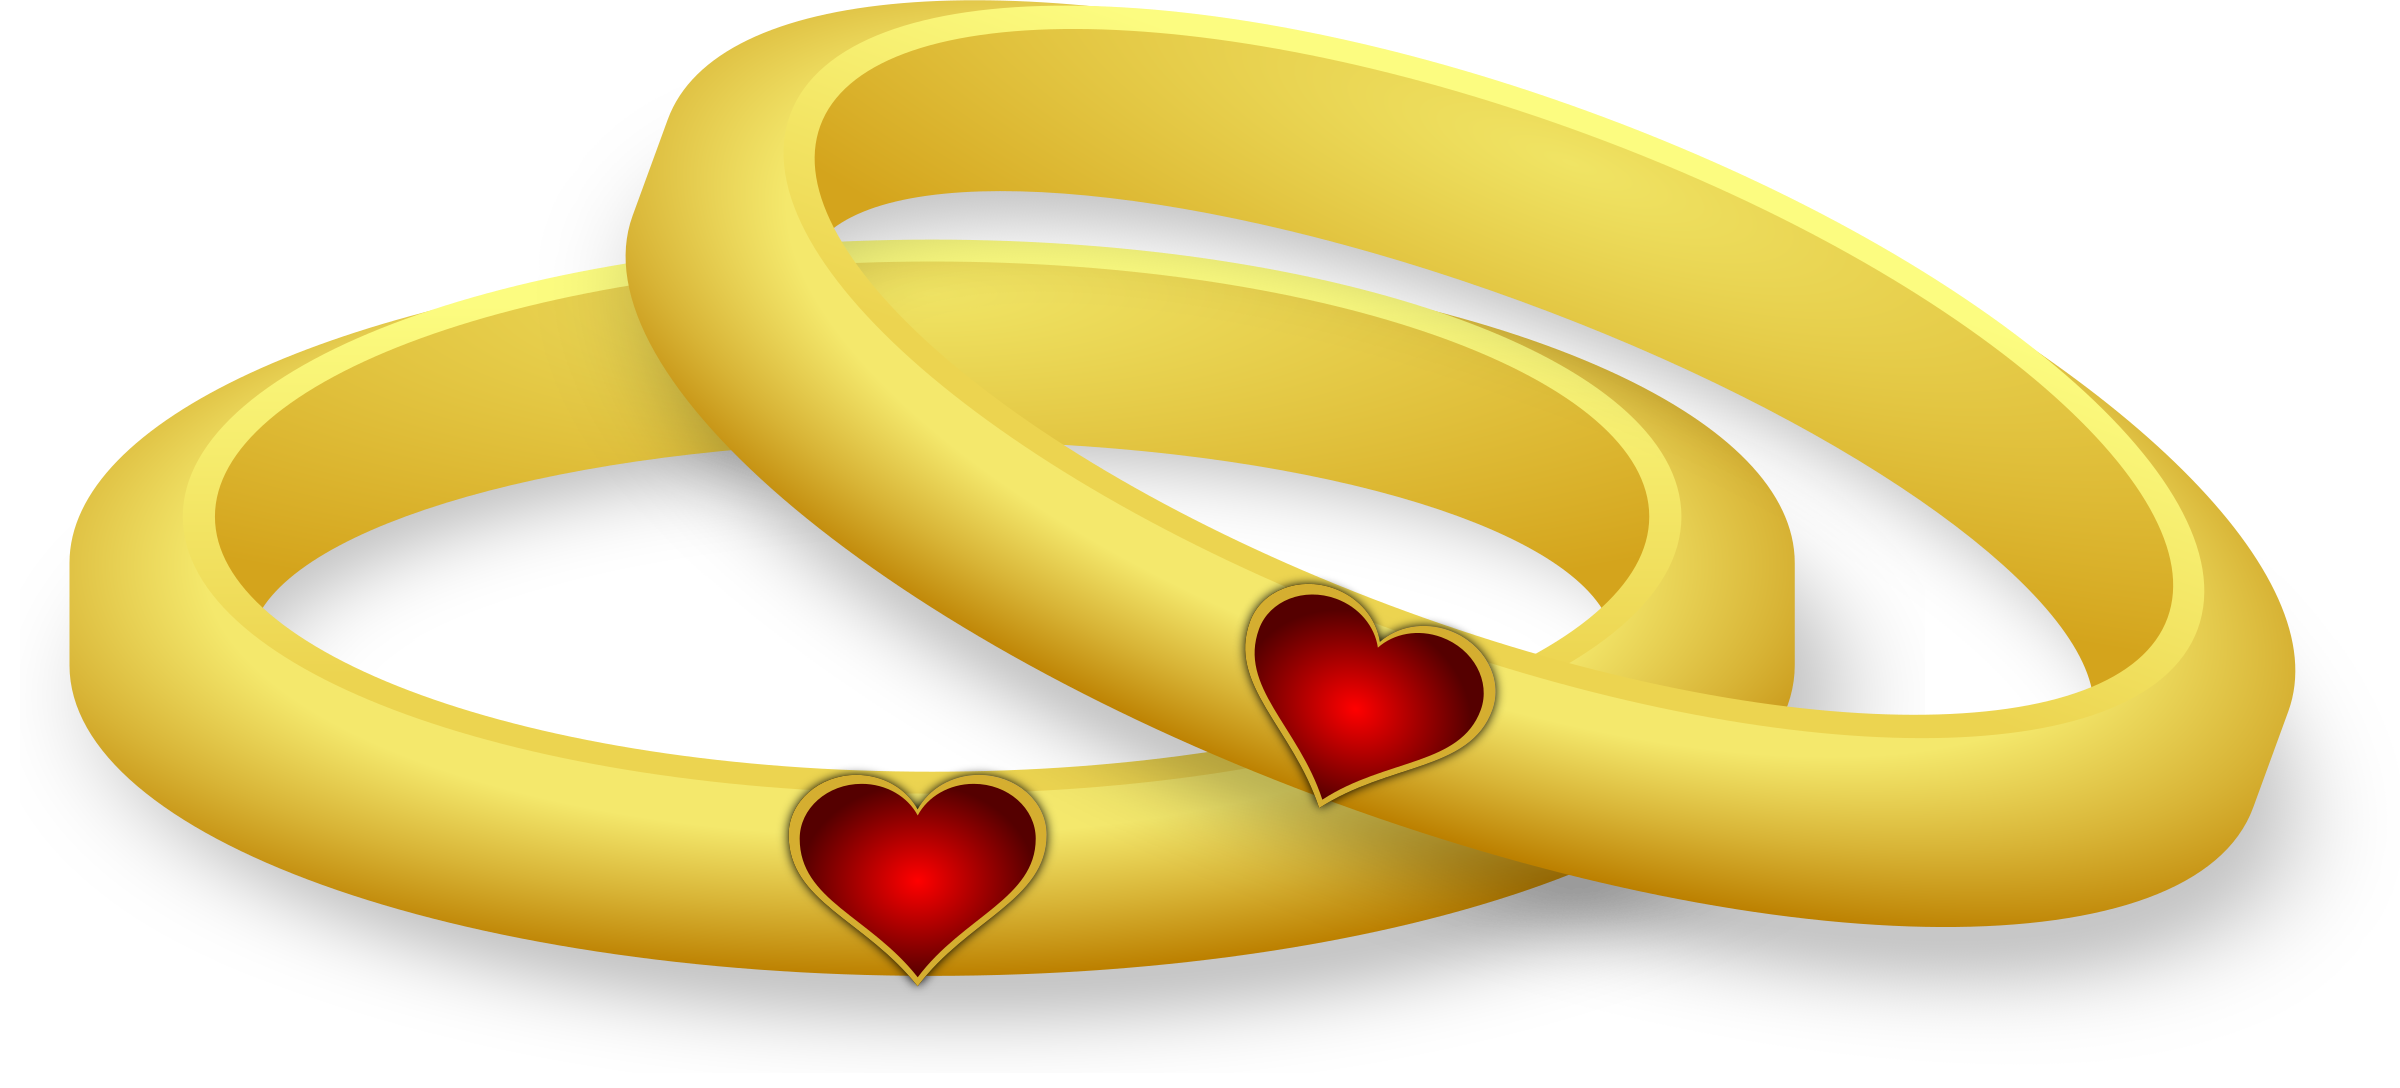 Clipart heart wedding picture library stock Clipart - Wedding Ring picture library stock